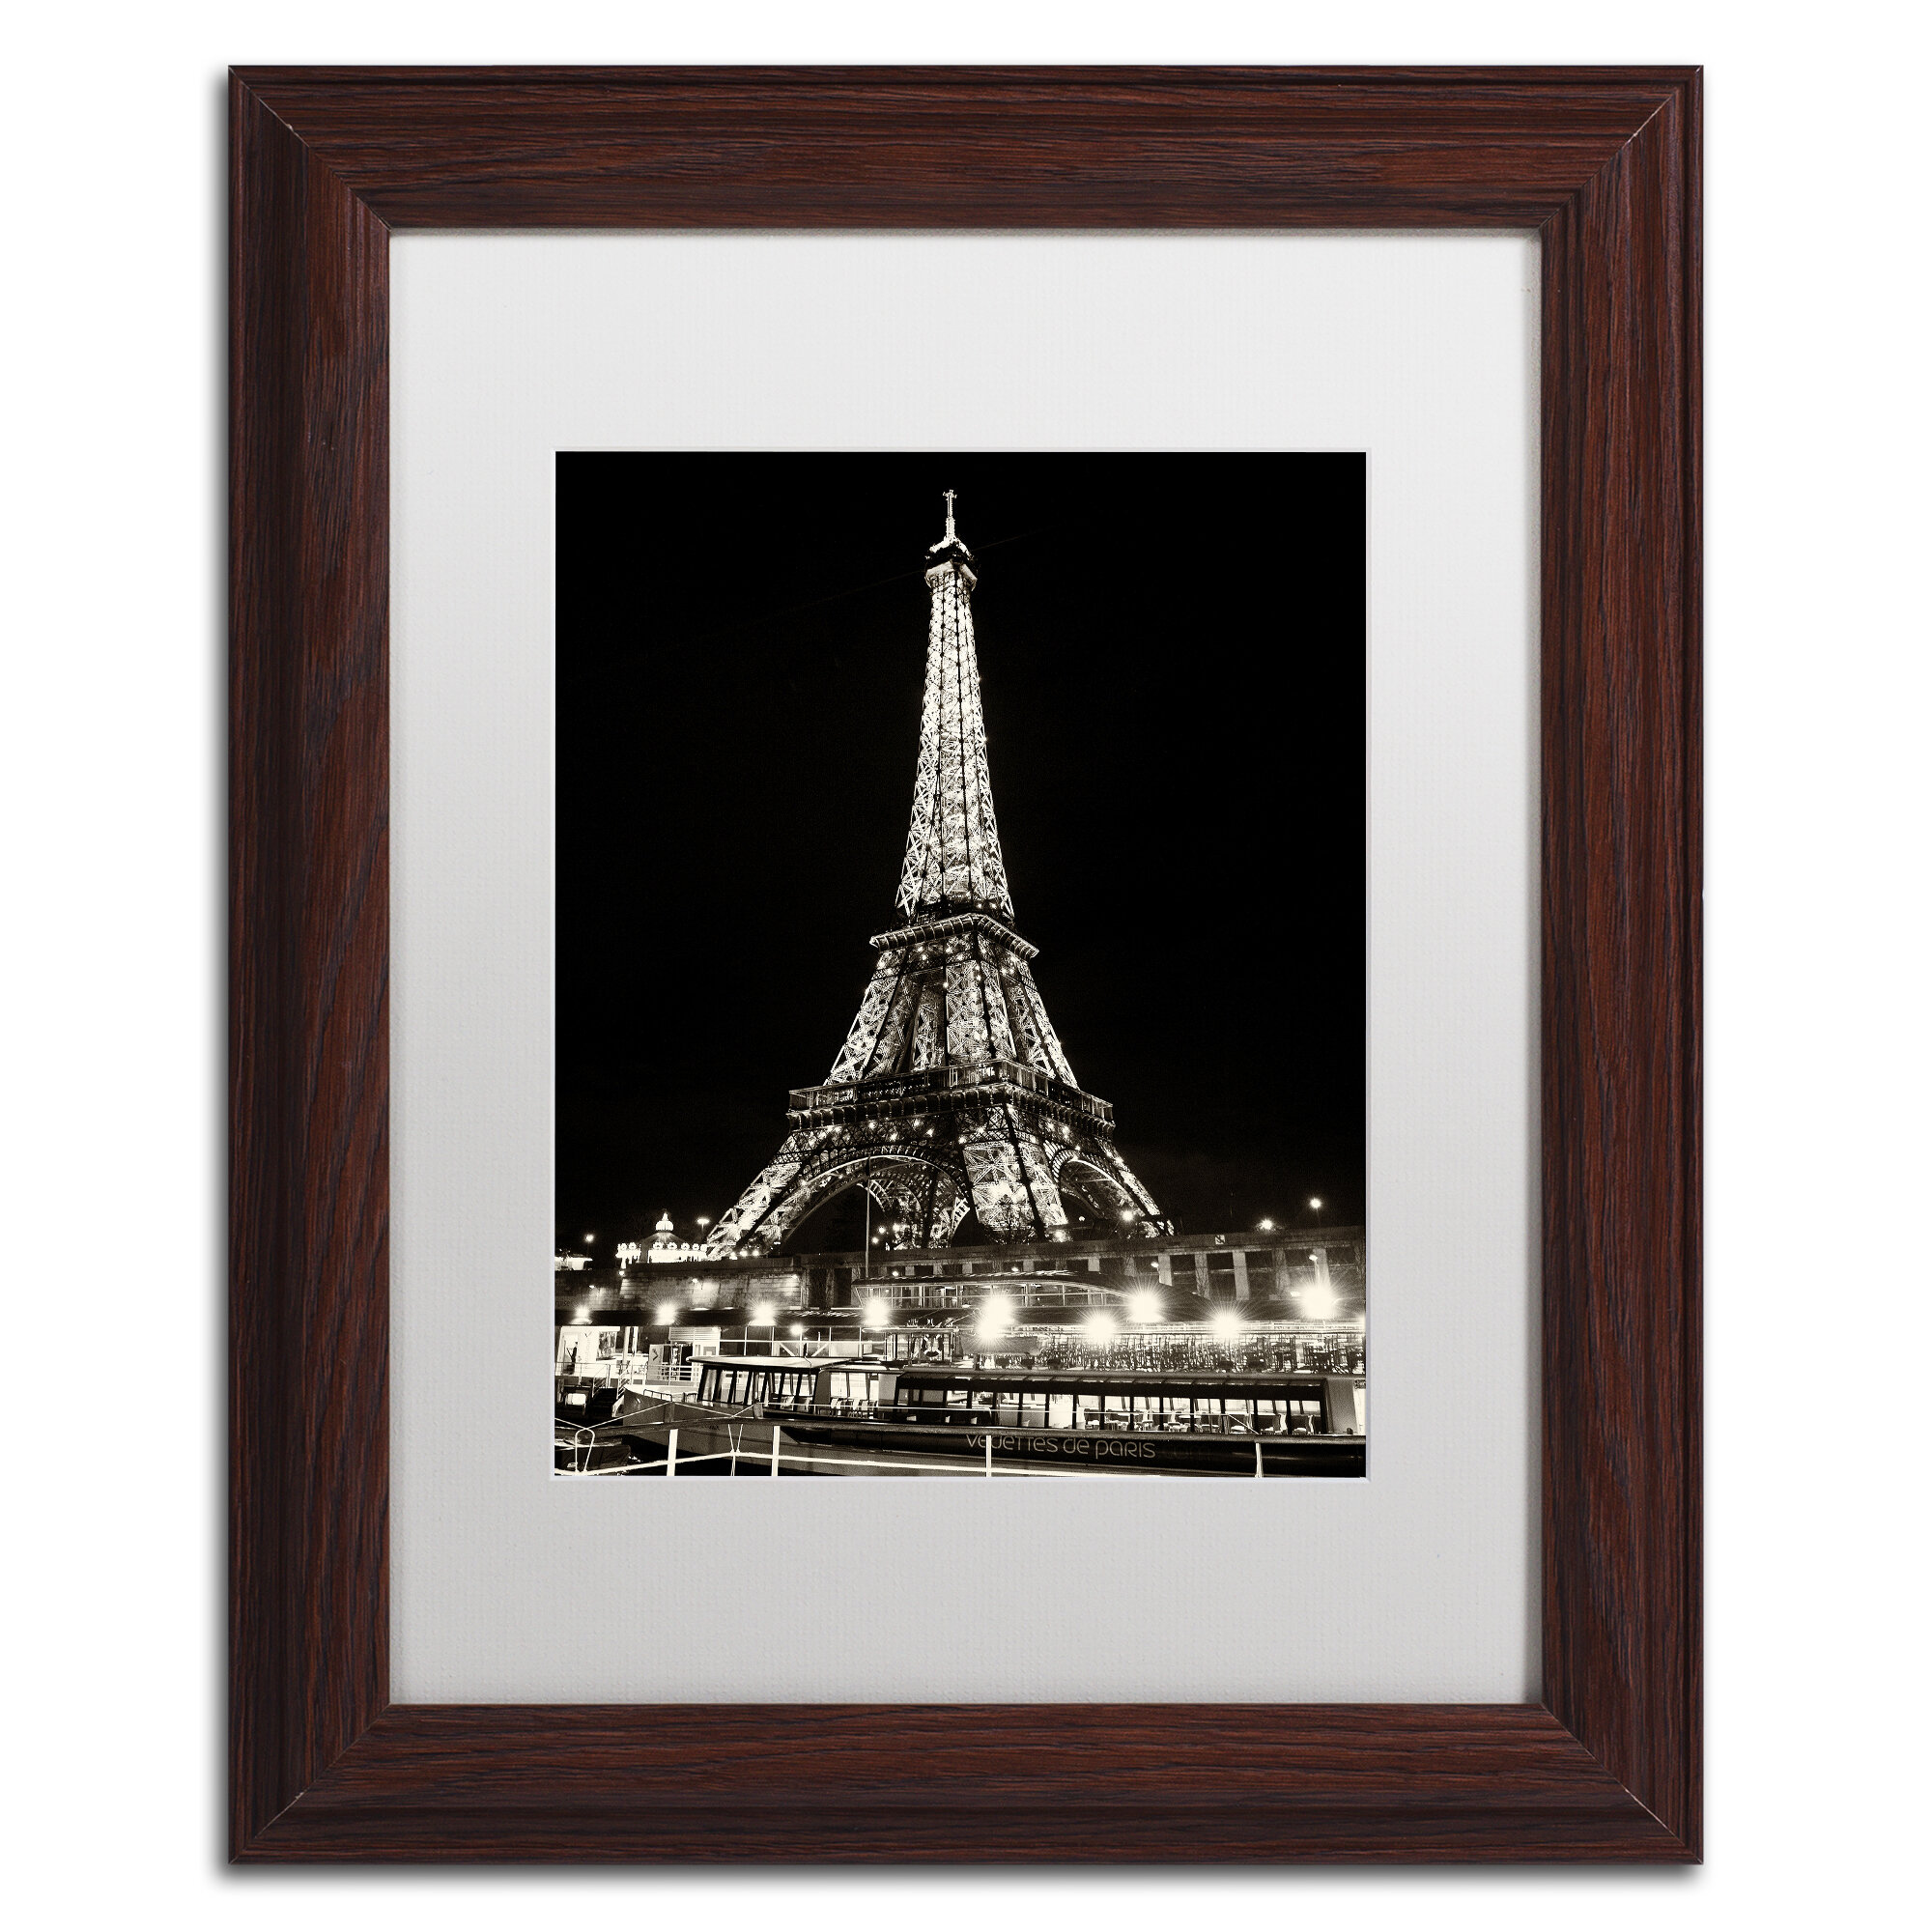 Trademark Art Eiffel Tower Paris Framed Photographic Print Wayfair